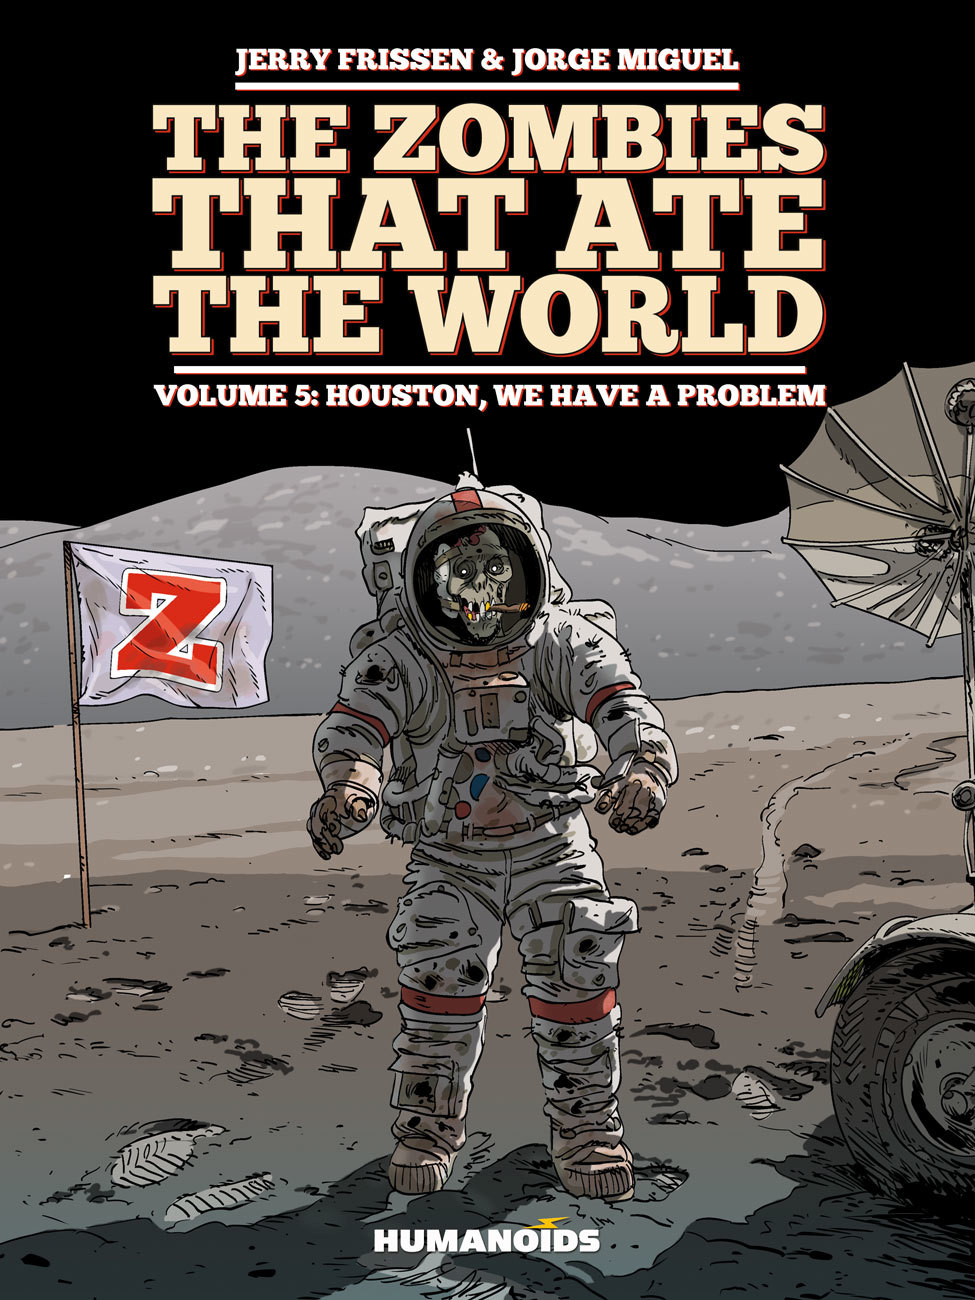 The Zombies that Ate the World #5 : Houston, We Have a Problem - Digital Comic